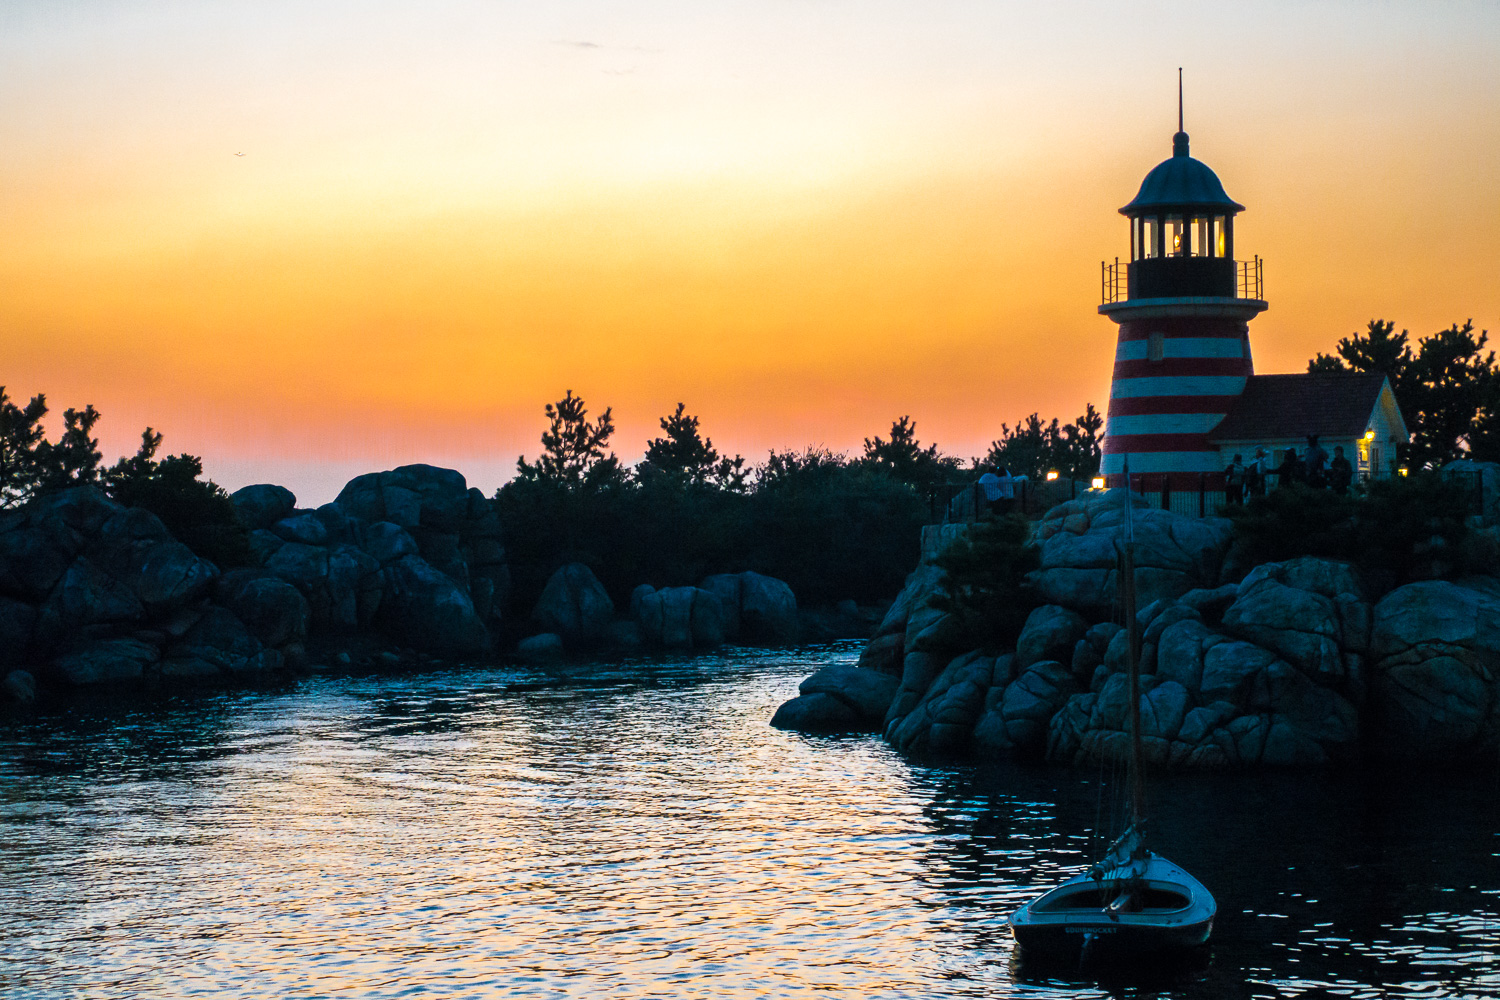 I was running to catch up with my family because I kept on stopping to take photos but I absolutely had to stop again for this sunset photo in DisneySea.